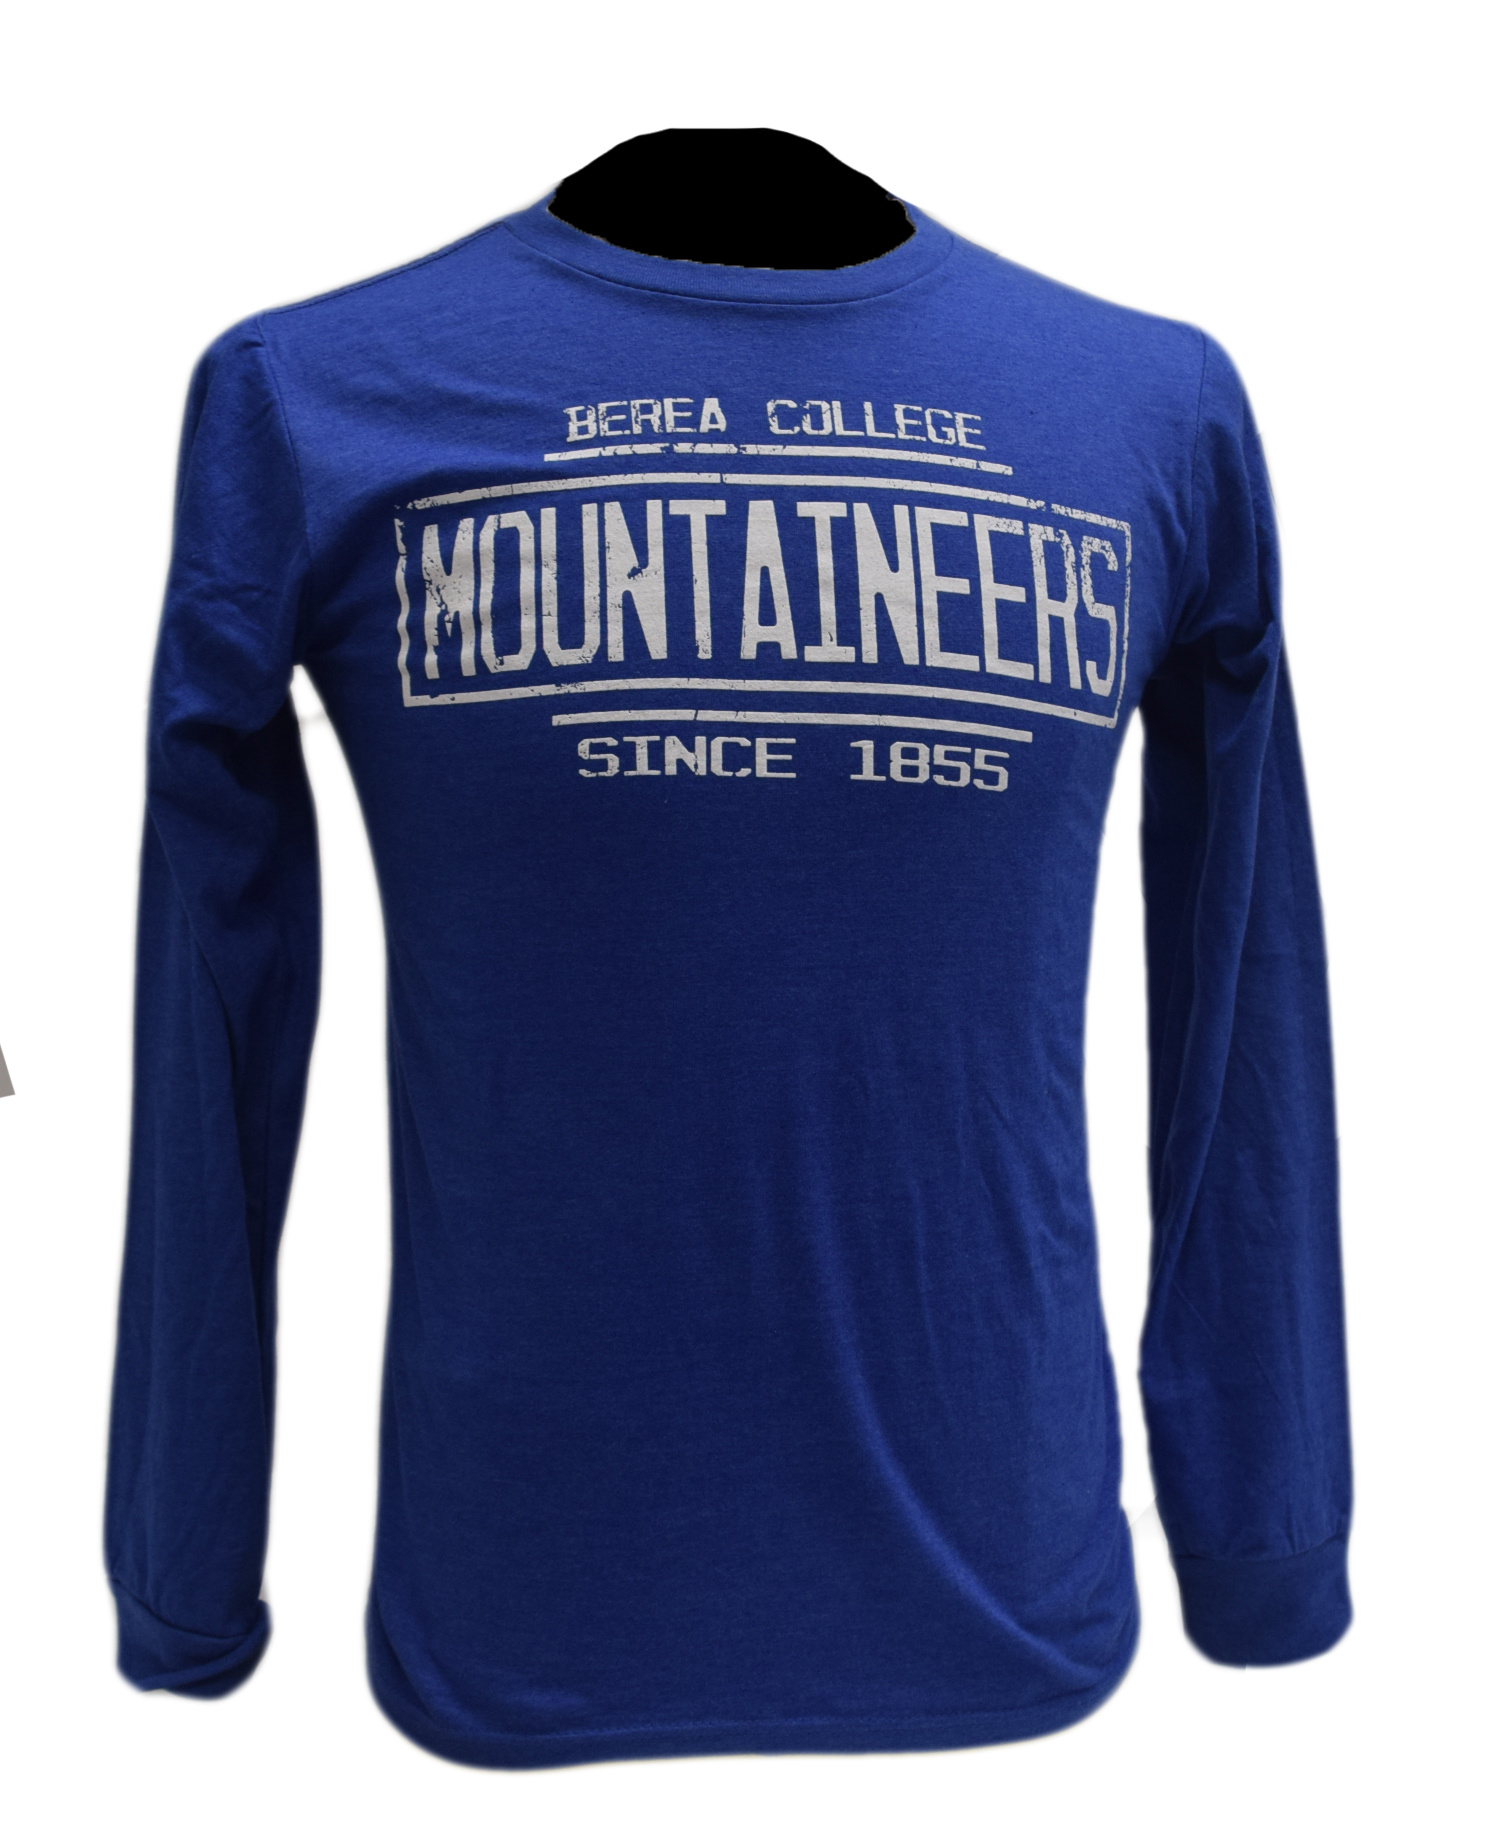 Berea College Mountaineers Since 1855 Long sleeve-3